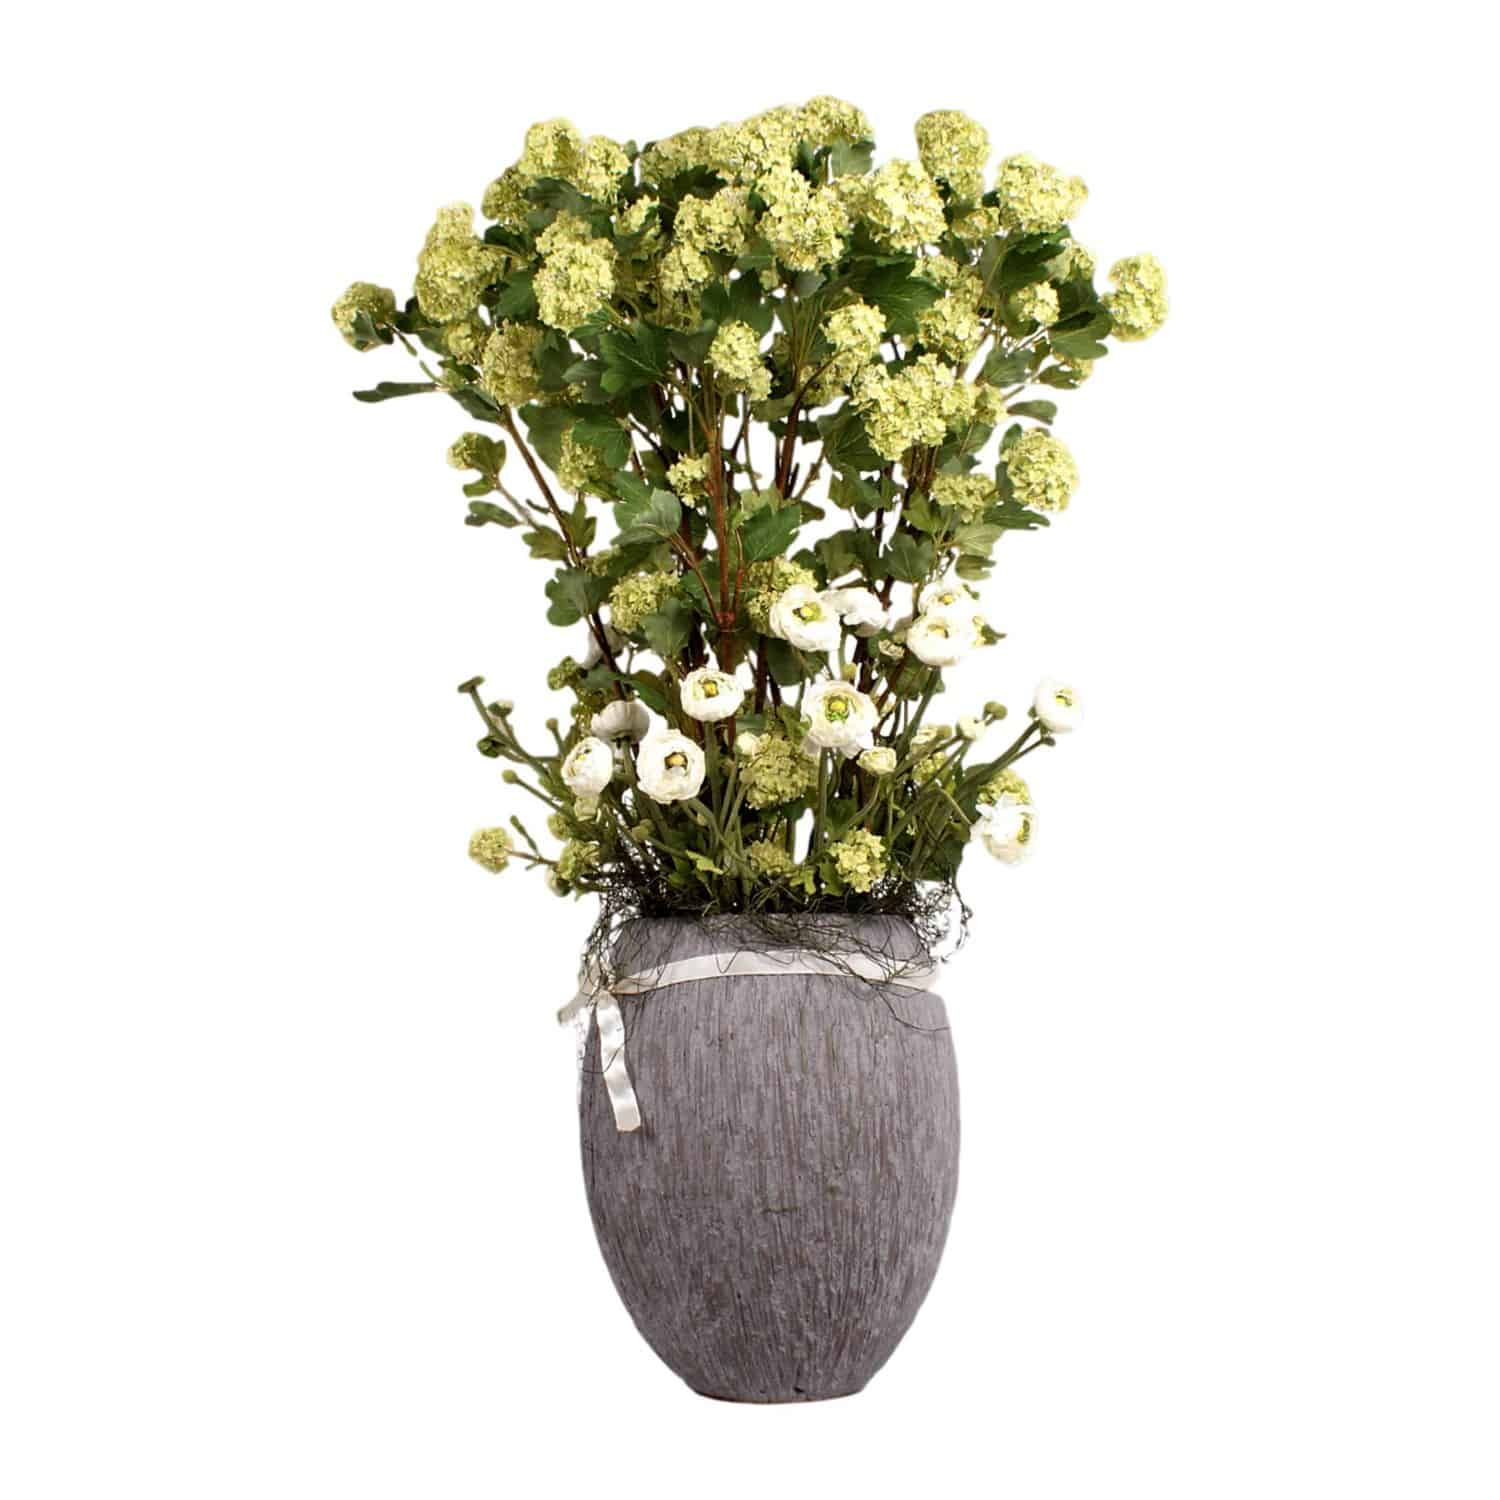 Buy our refreshing soft green flowering silk guelder rose arrangement with ranunculus silk flowers and natural looking pollen